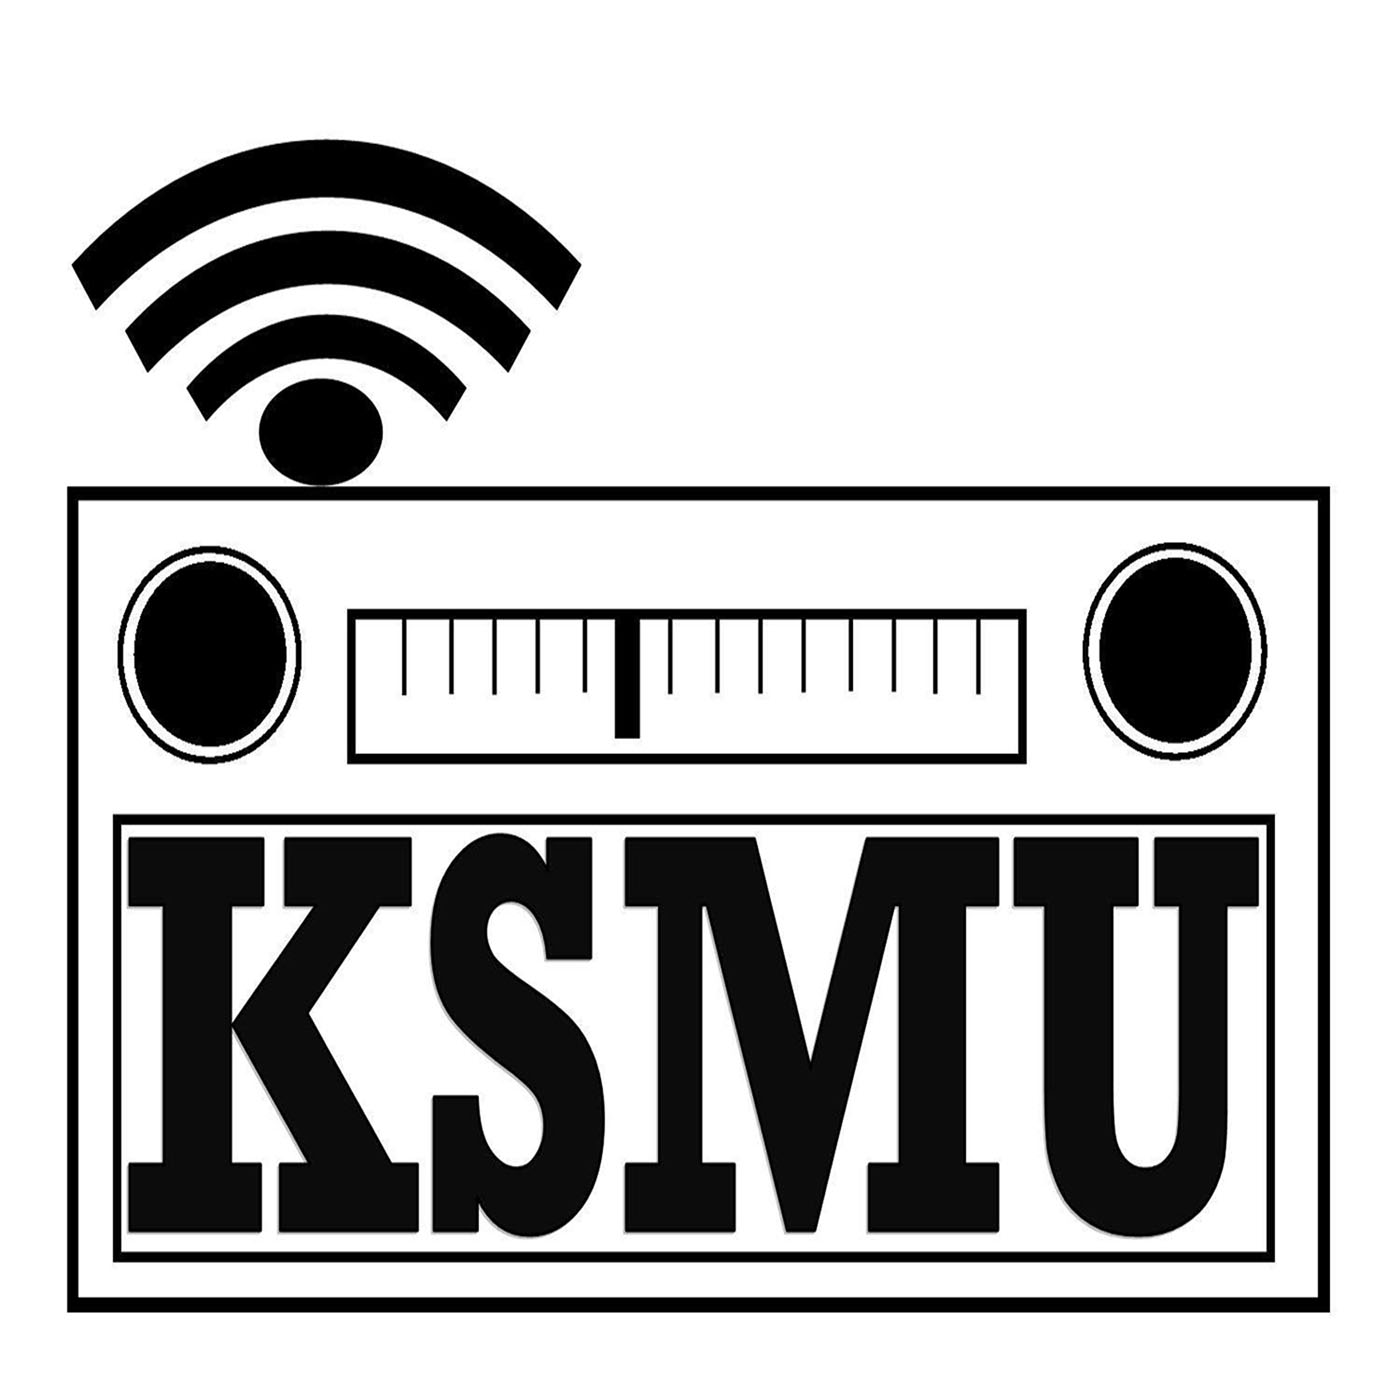 KSMU - Saints on air